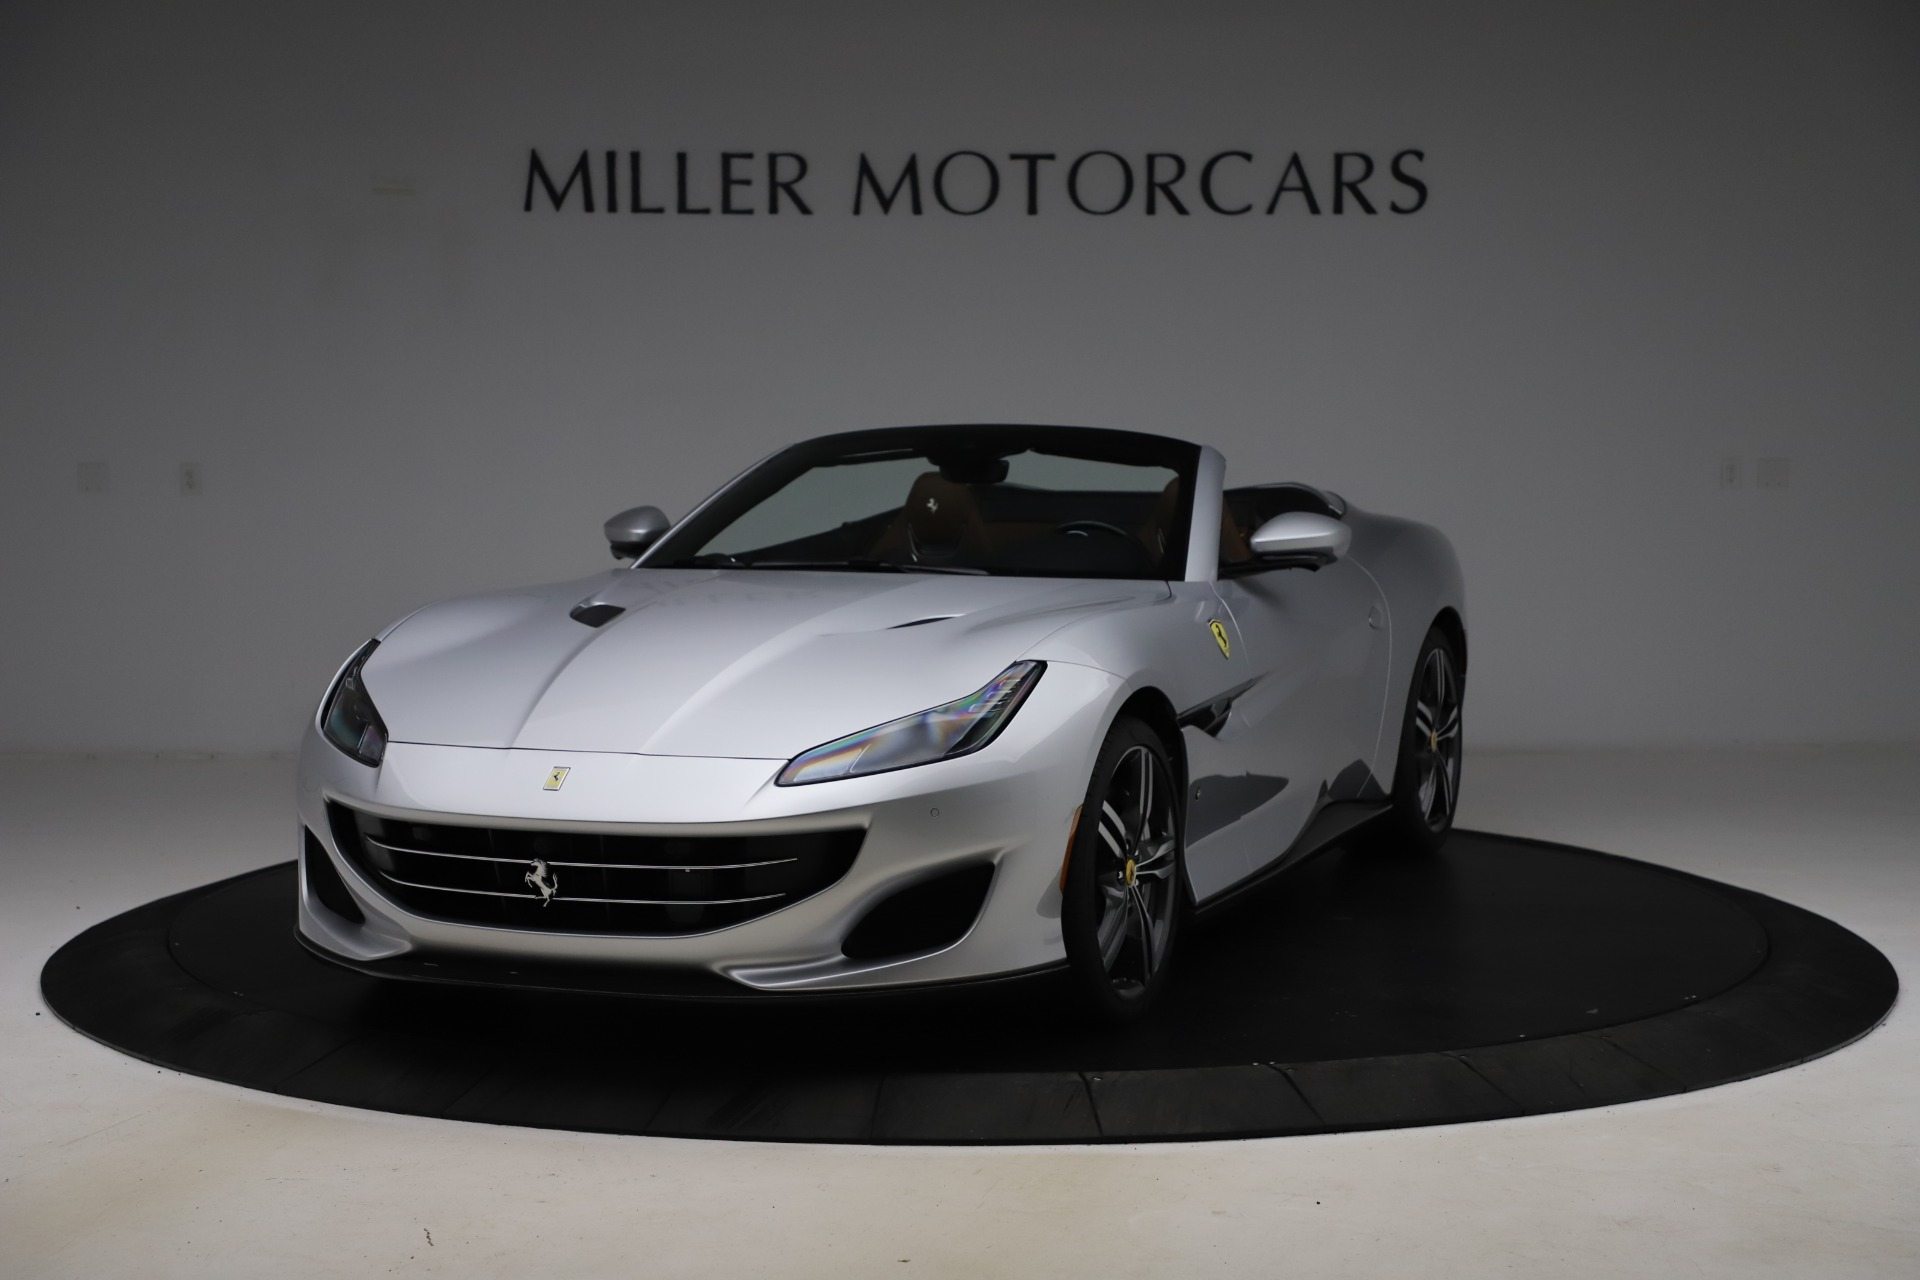 Used 2020 Ferrari Portofino for sale Sold at Pagani of Greenwich in Greenwich CT 06830 1